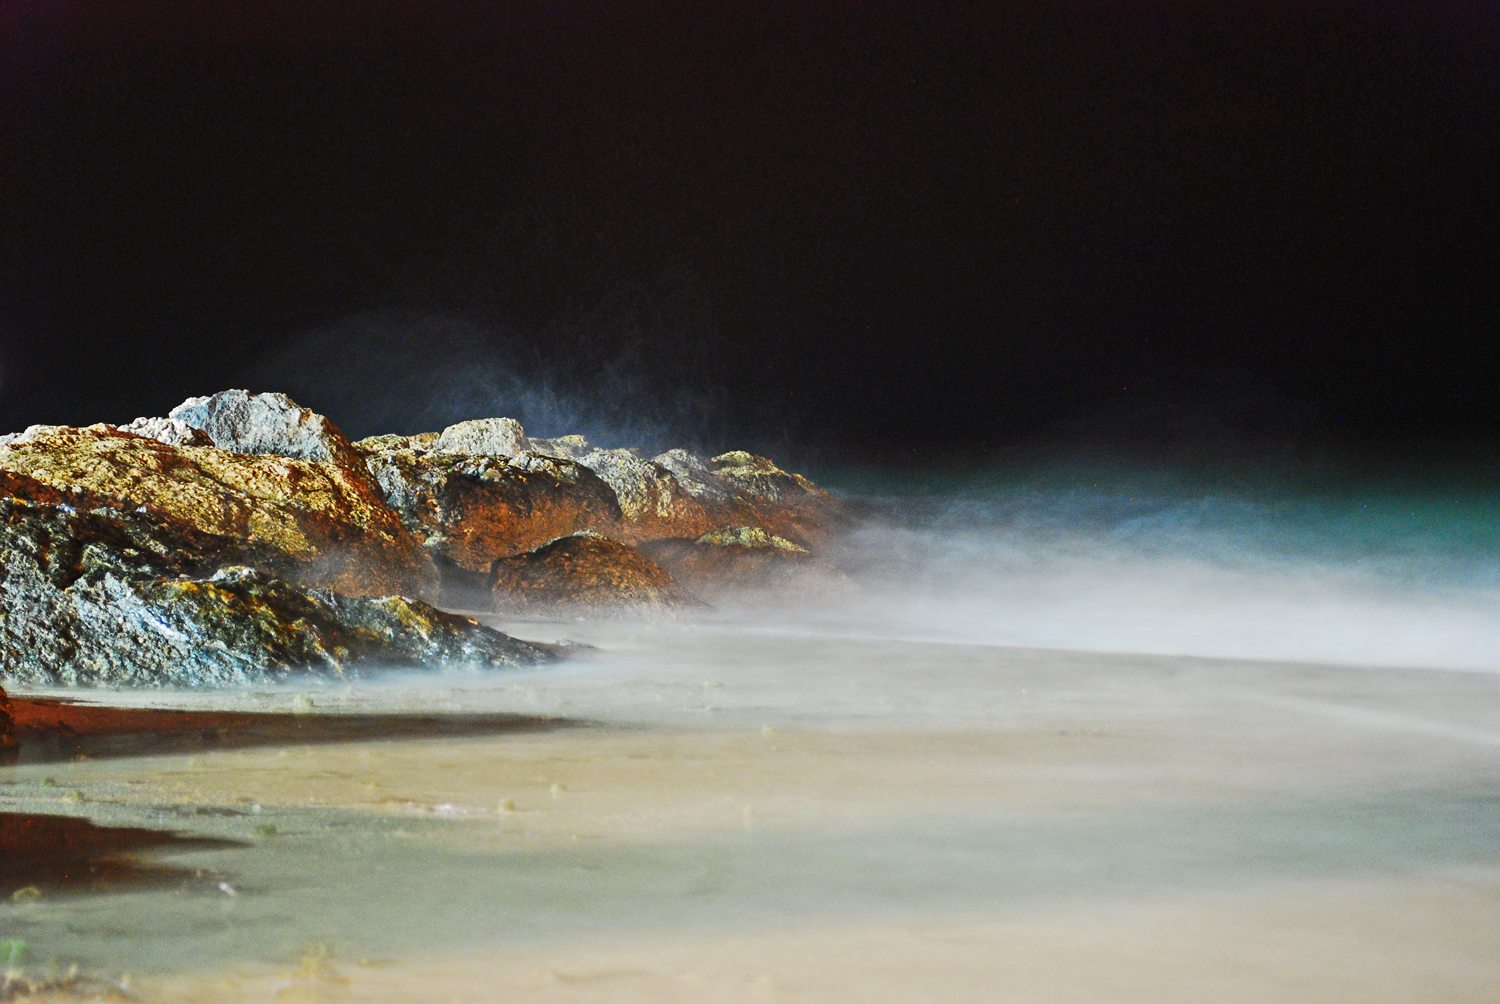 Beach, Night Photography, Long Exposure